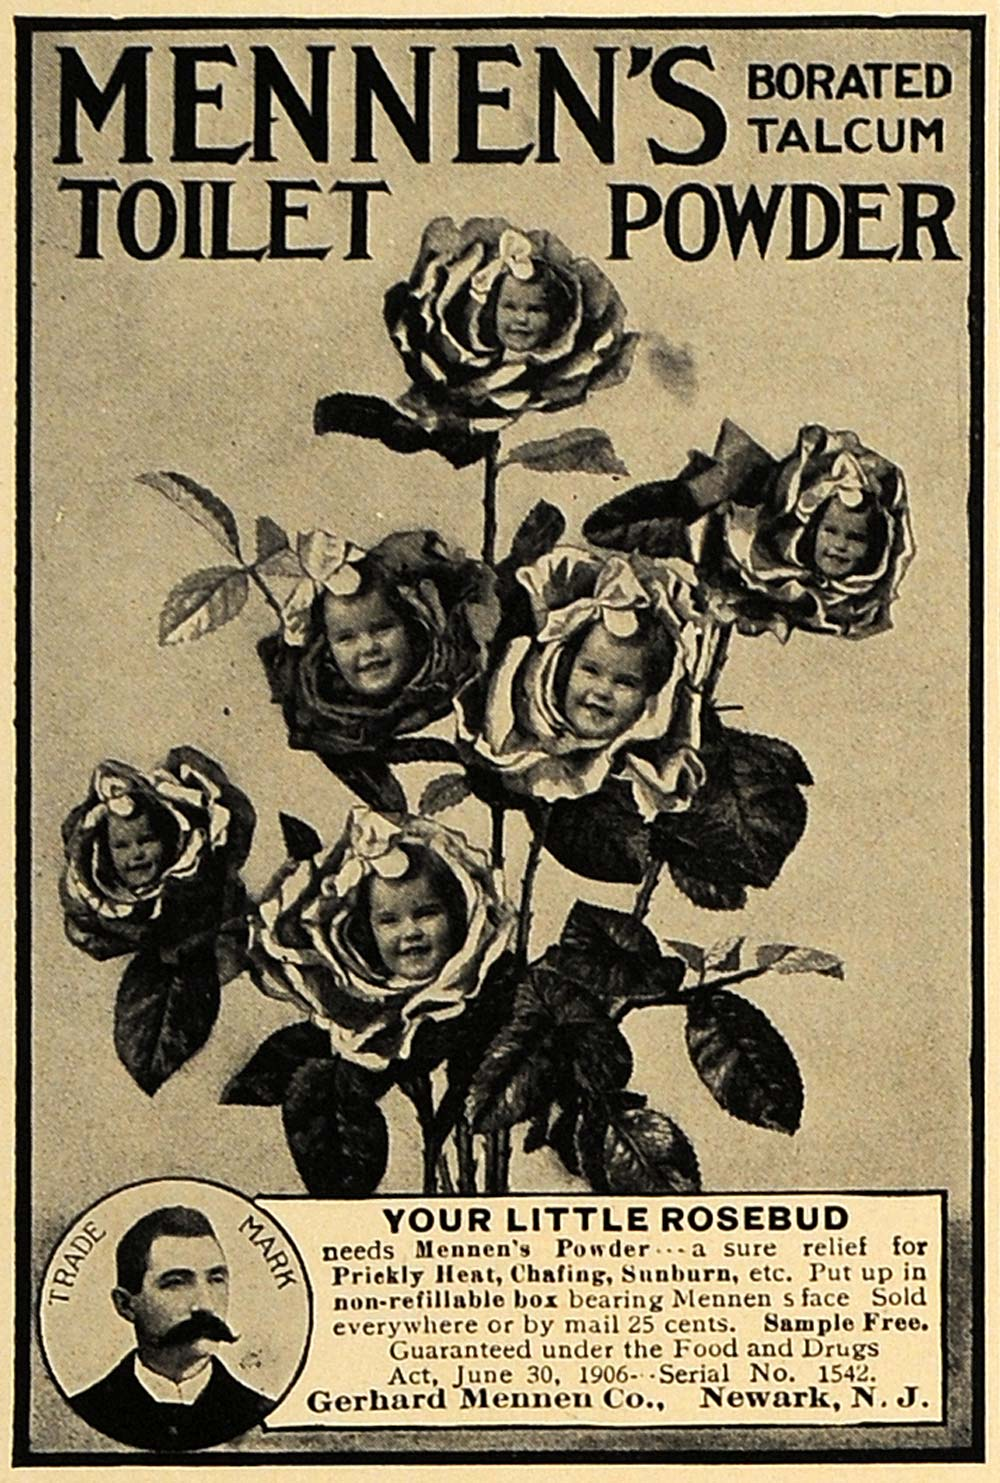 1907 Ad Mennen's Talcum Toilet Powder Child Rosebuds - ORIGINAL ADVERTISING CL8